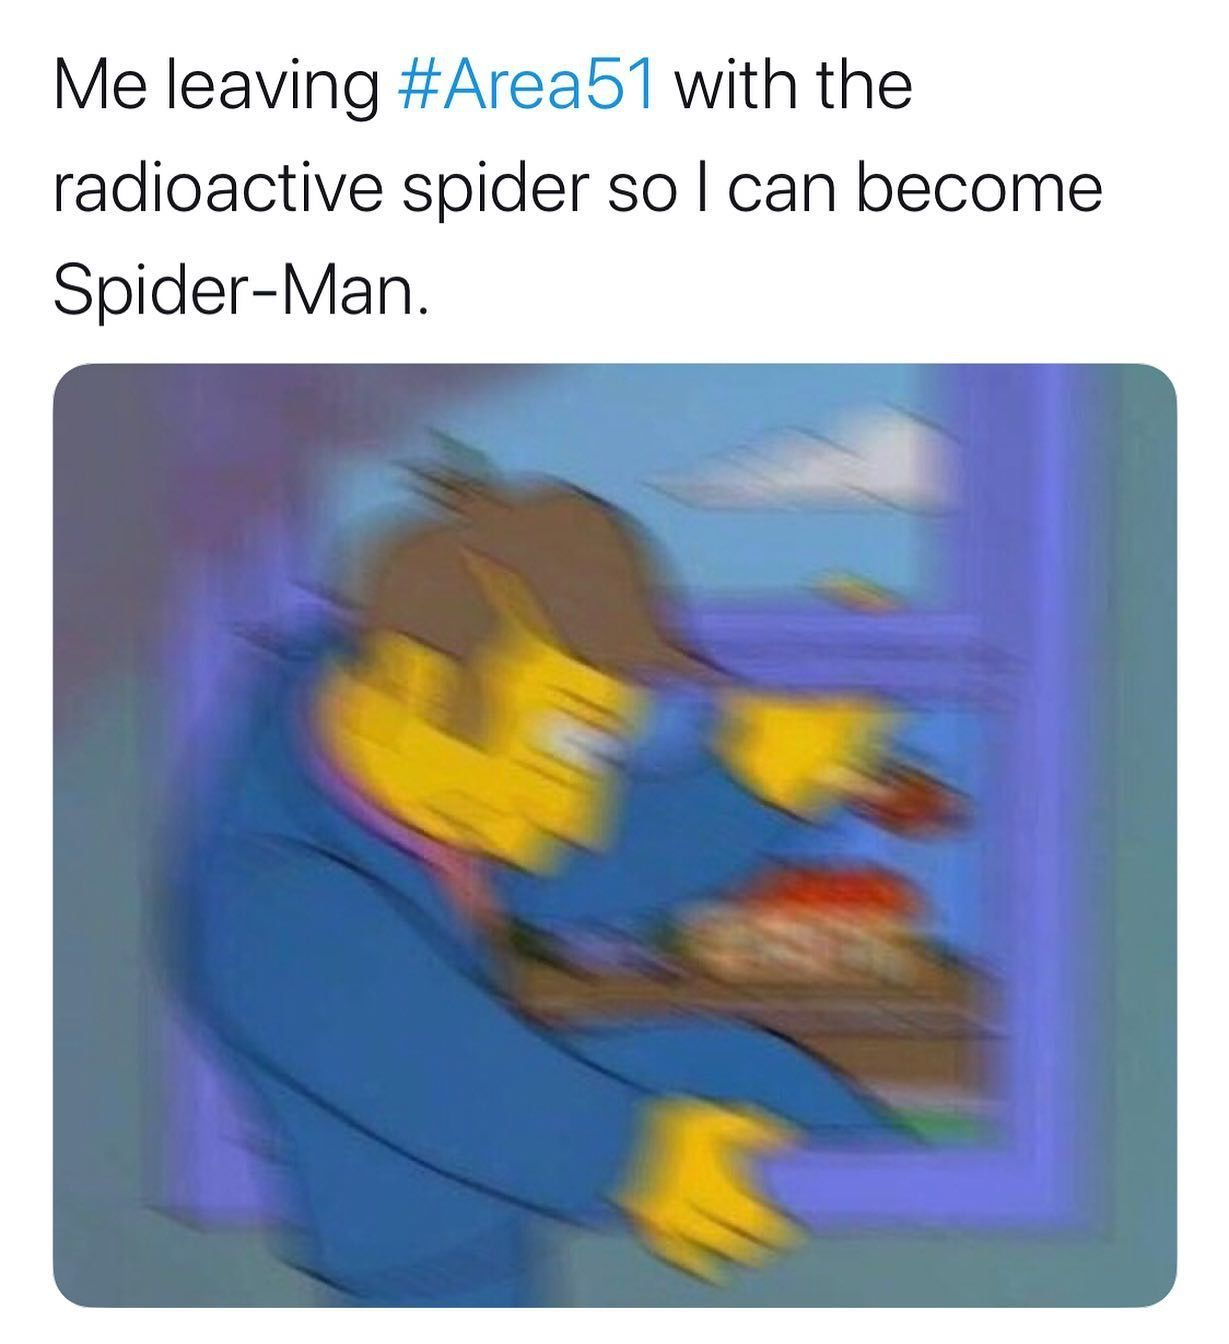 Image may contain: Area 51 memes, Area 51, meme, reaction, twitter, facebook, event, Las Vegas, Nevada, where, origin, explained, what is Area 51, alien, spoiler, simpsons, spider man,  Text